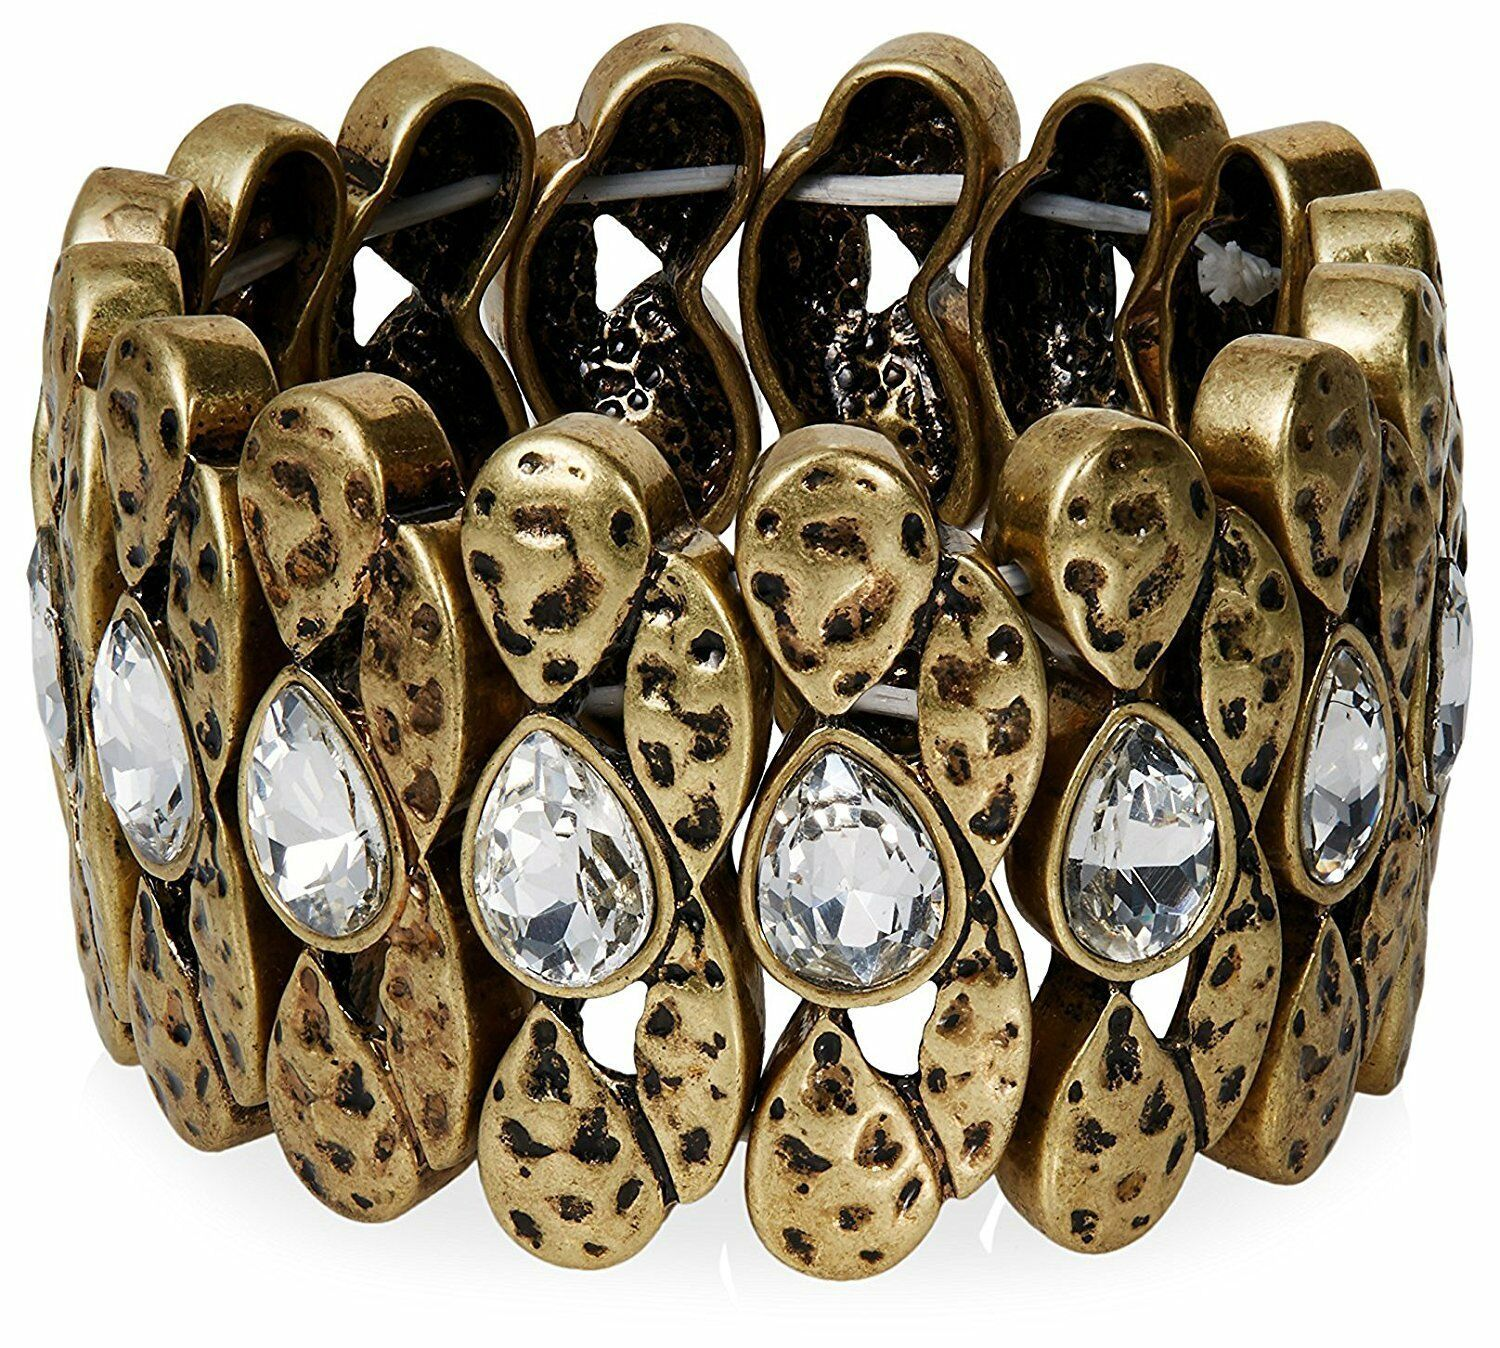 NEW Lesile Danzis Aged 14K Gold-Plated Stretch Bracelet with Crystals